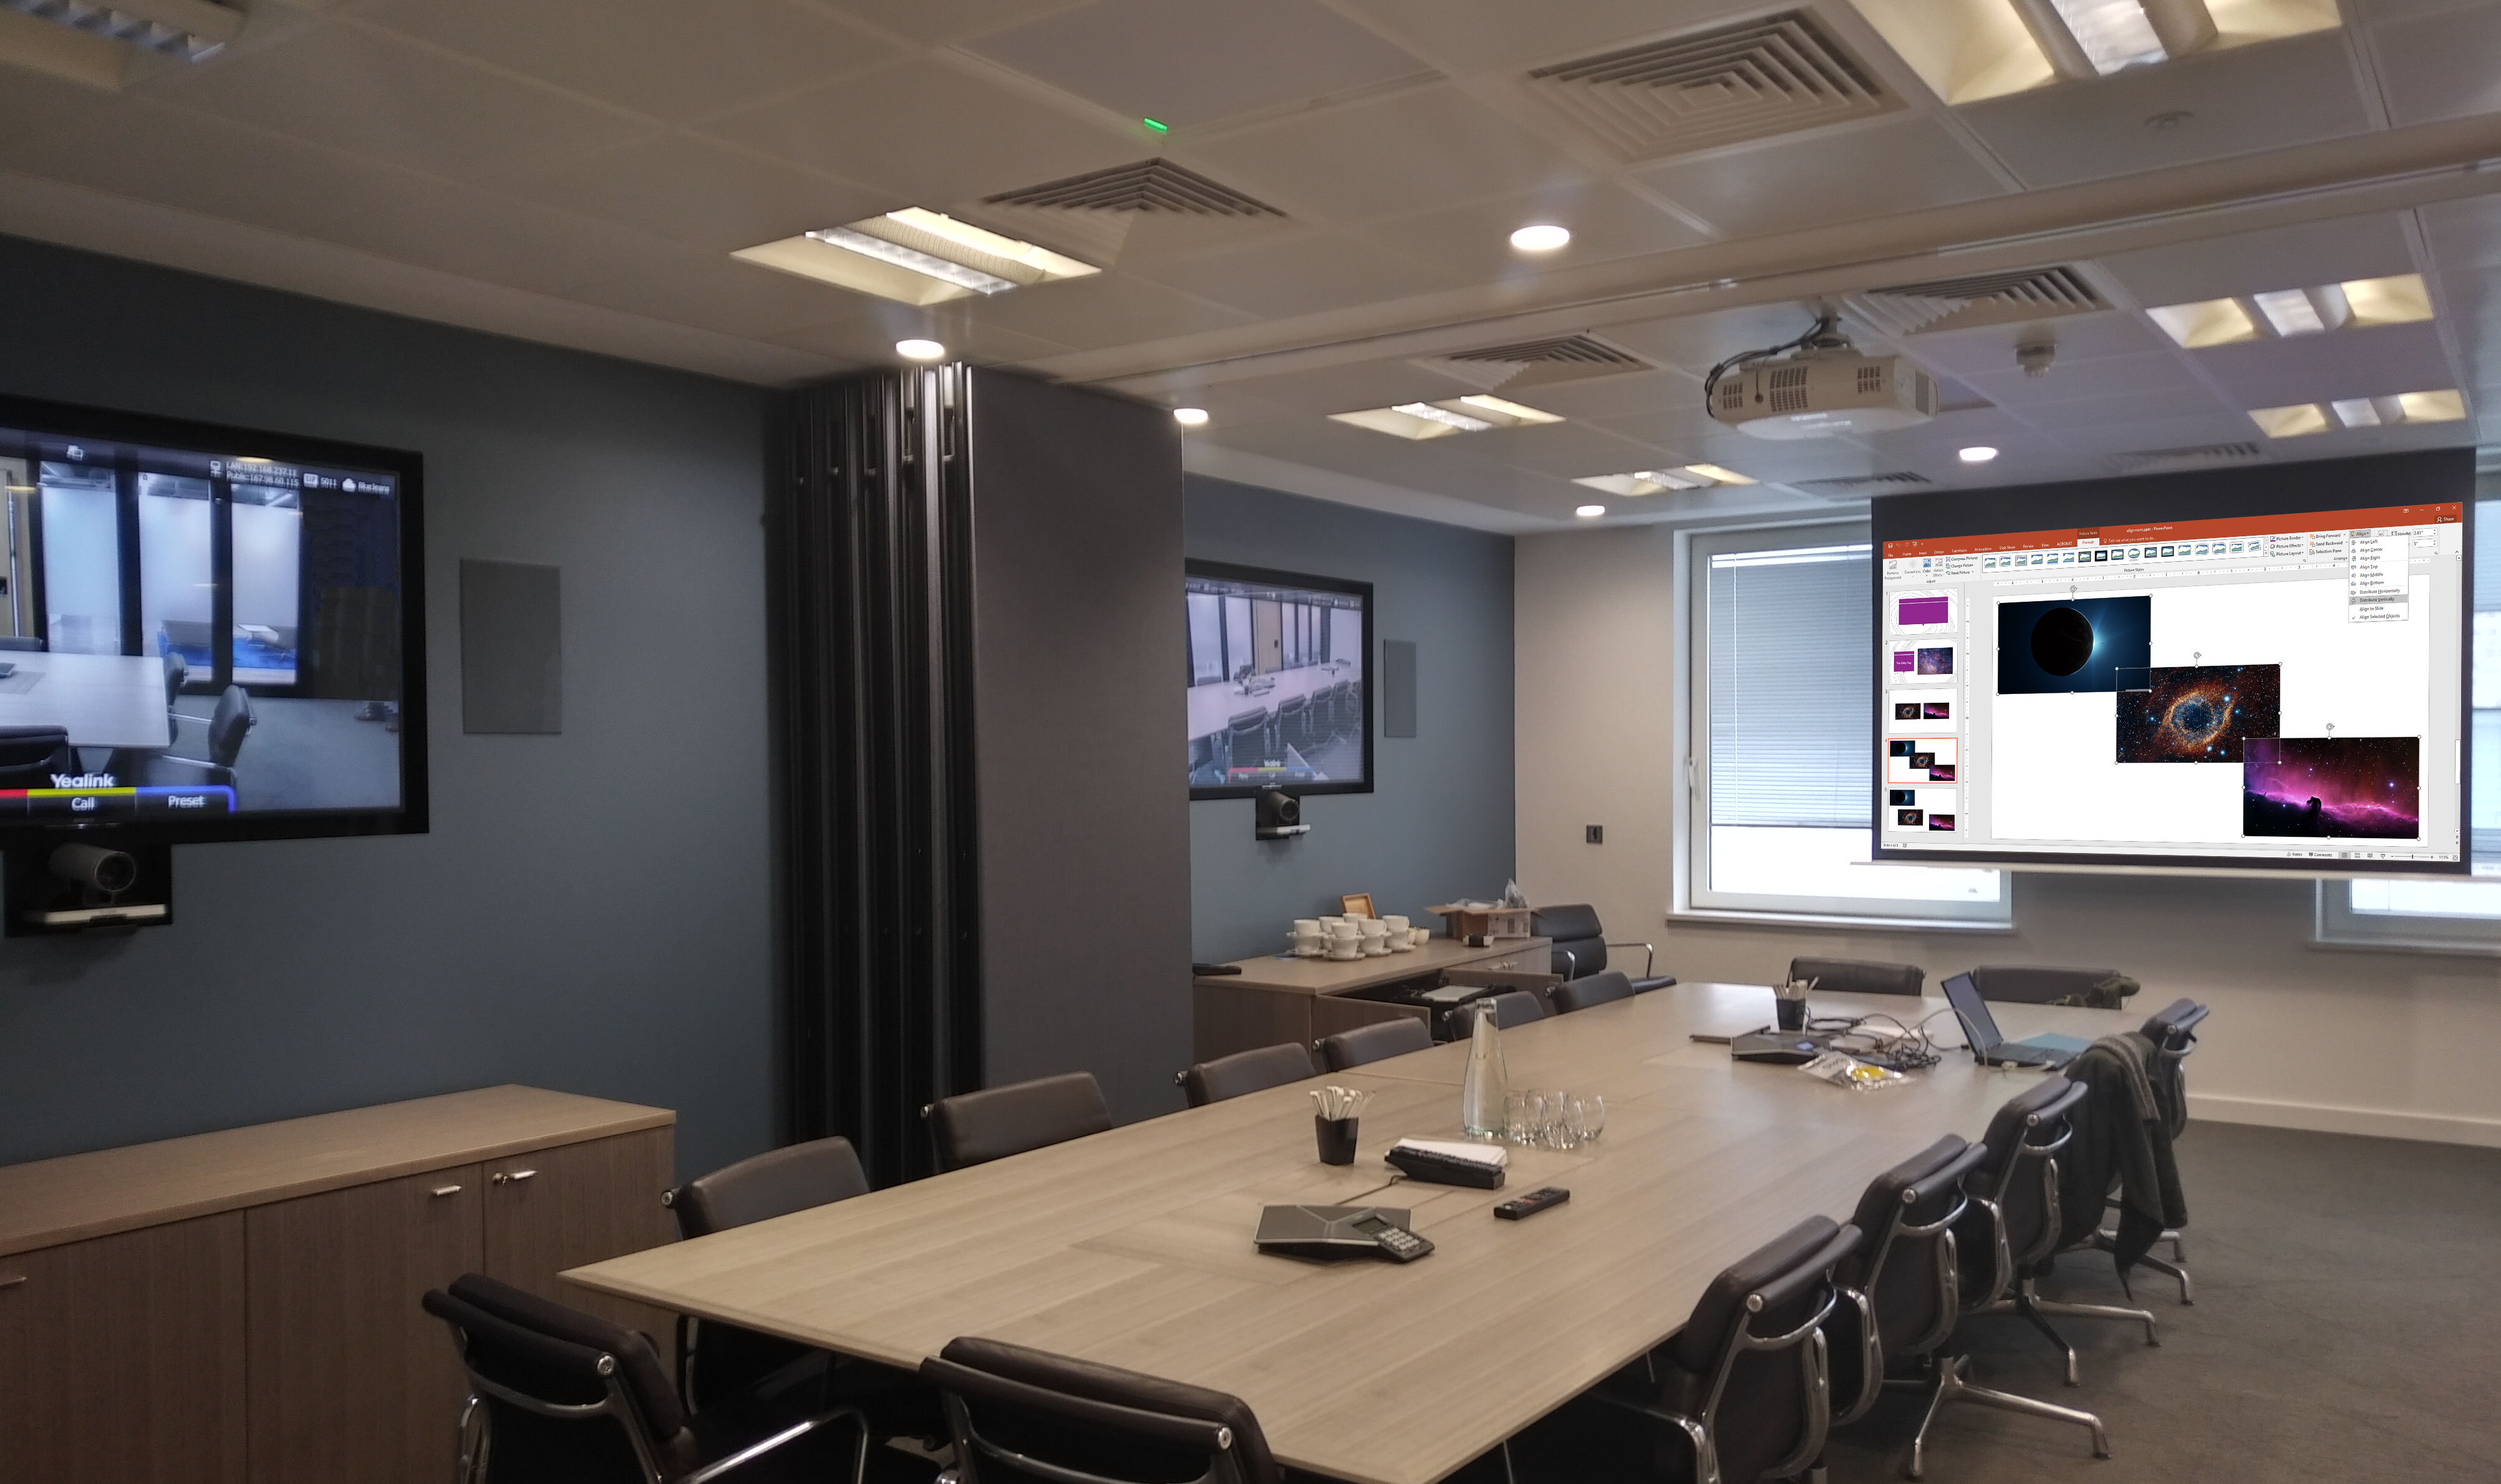 Advanced boardroom AV with ceiling microphone, VC system, projection, dual monitors, automated controls